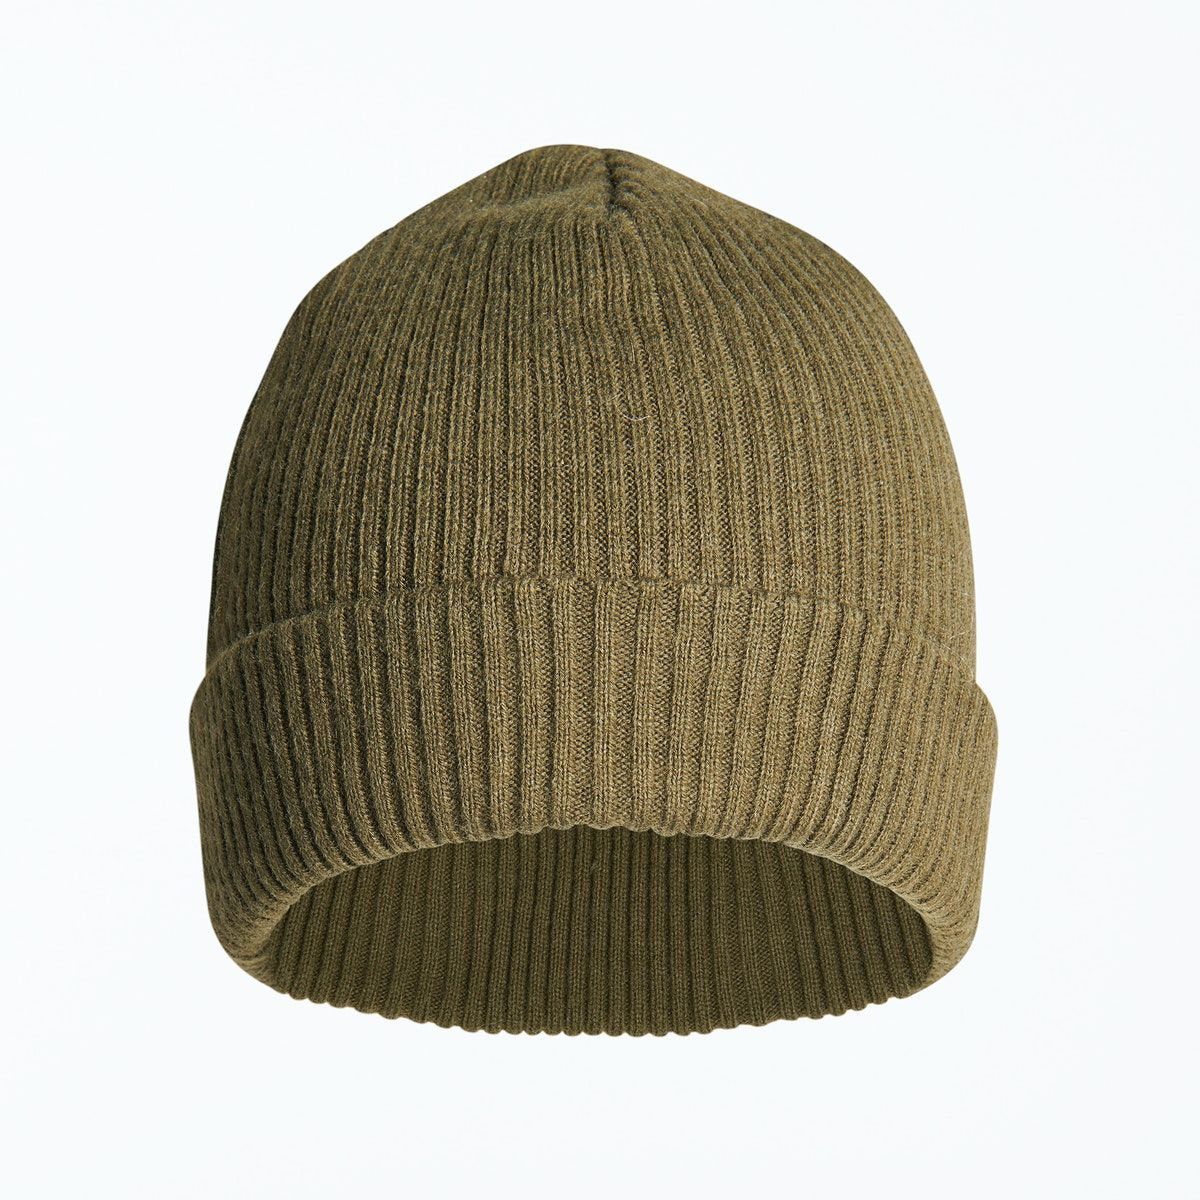 Download Download Premium Illustration Of Green Beanie Knitted Hat Mockup 2519978 Knitted Hats Clothing Mockup Knitted